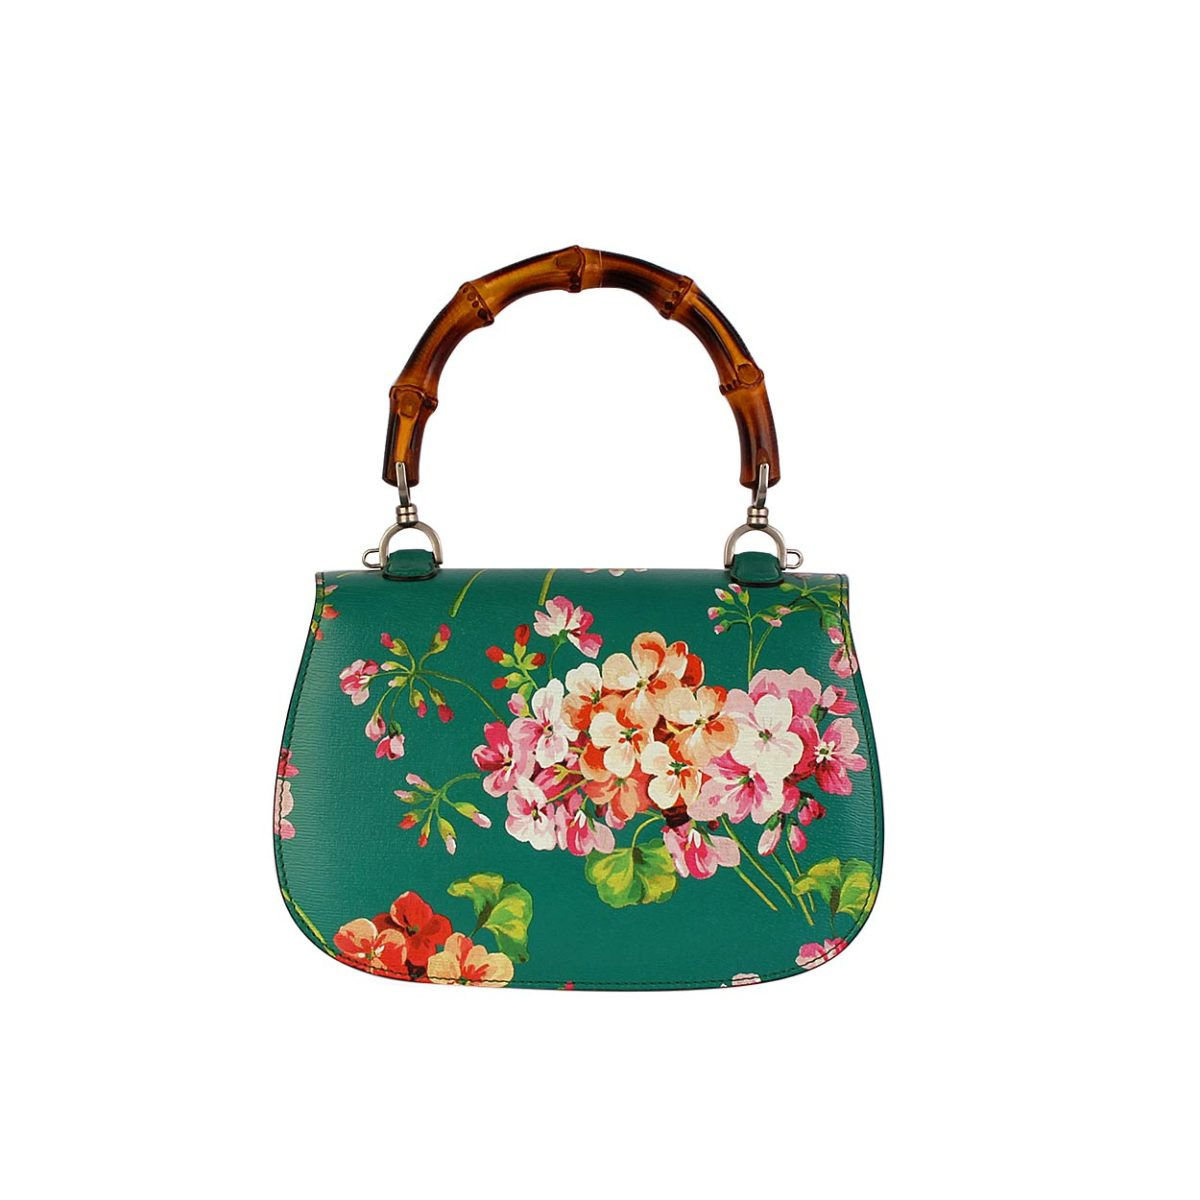 Gucci Bamboo Leather Classic Blooms Top